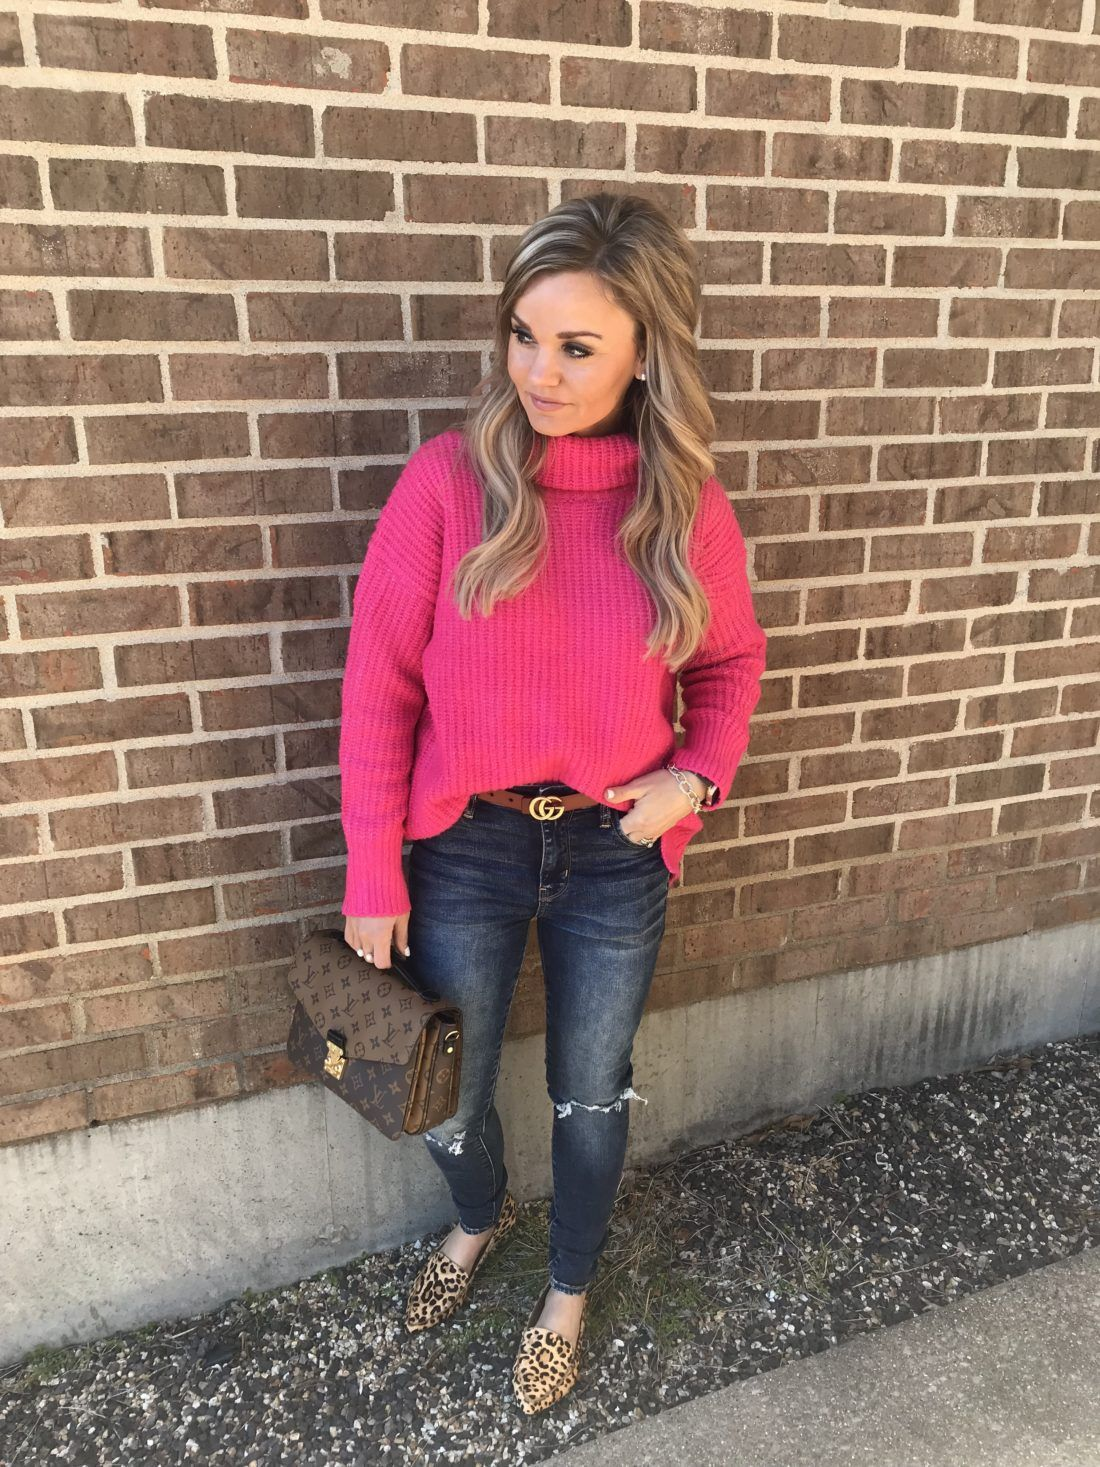 68f69e0f81 Casual outfit for transitioning to spring. Hot Pink Sweater with high  waisted jeans and leopard flats.